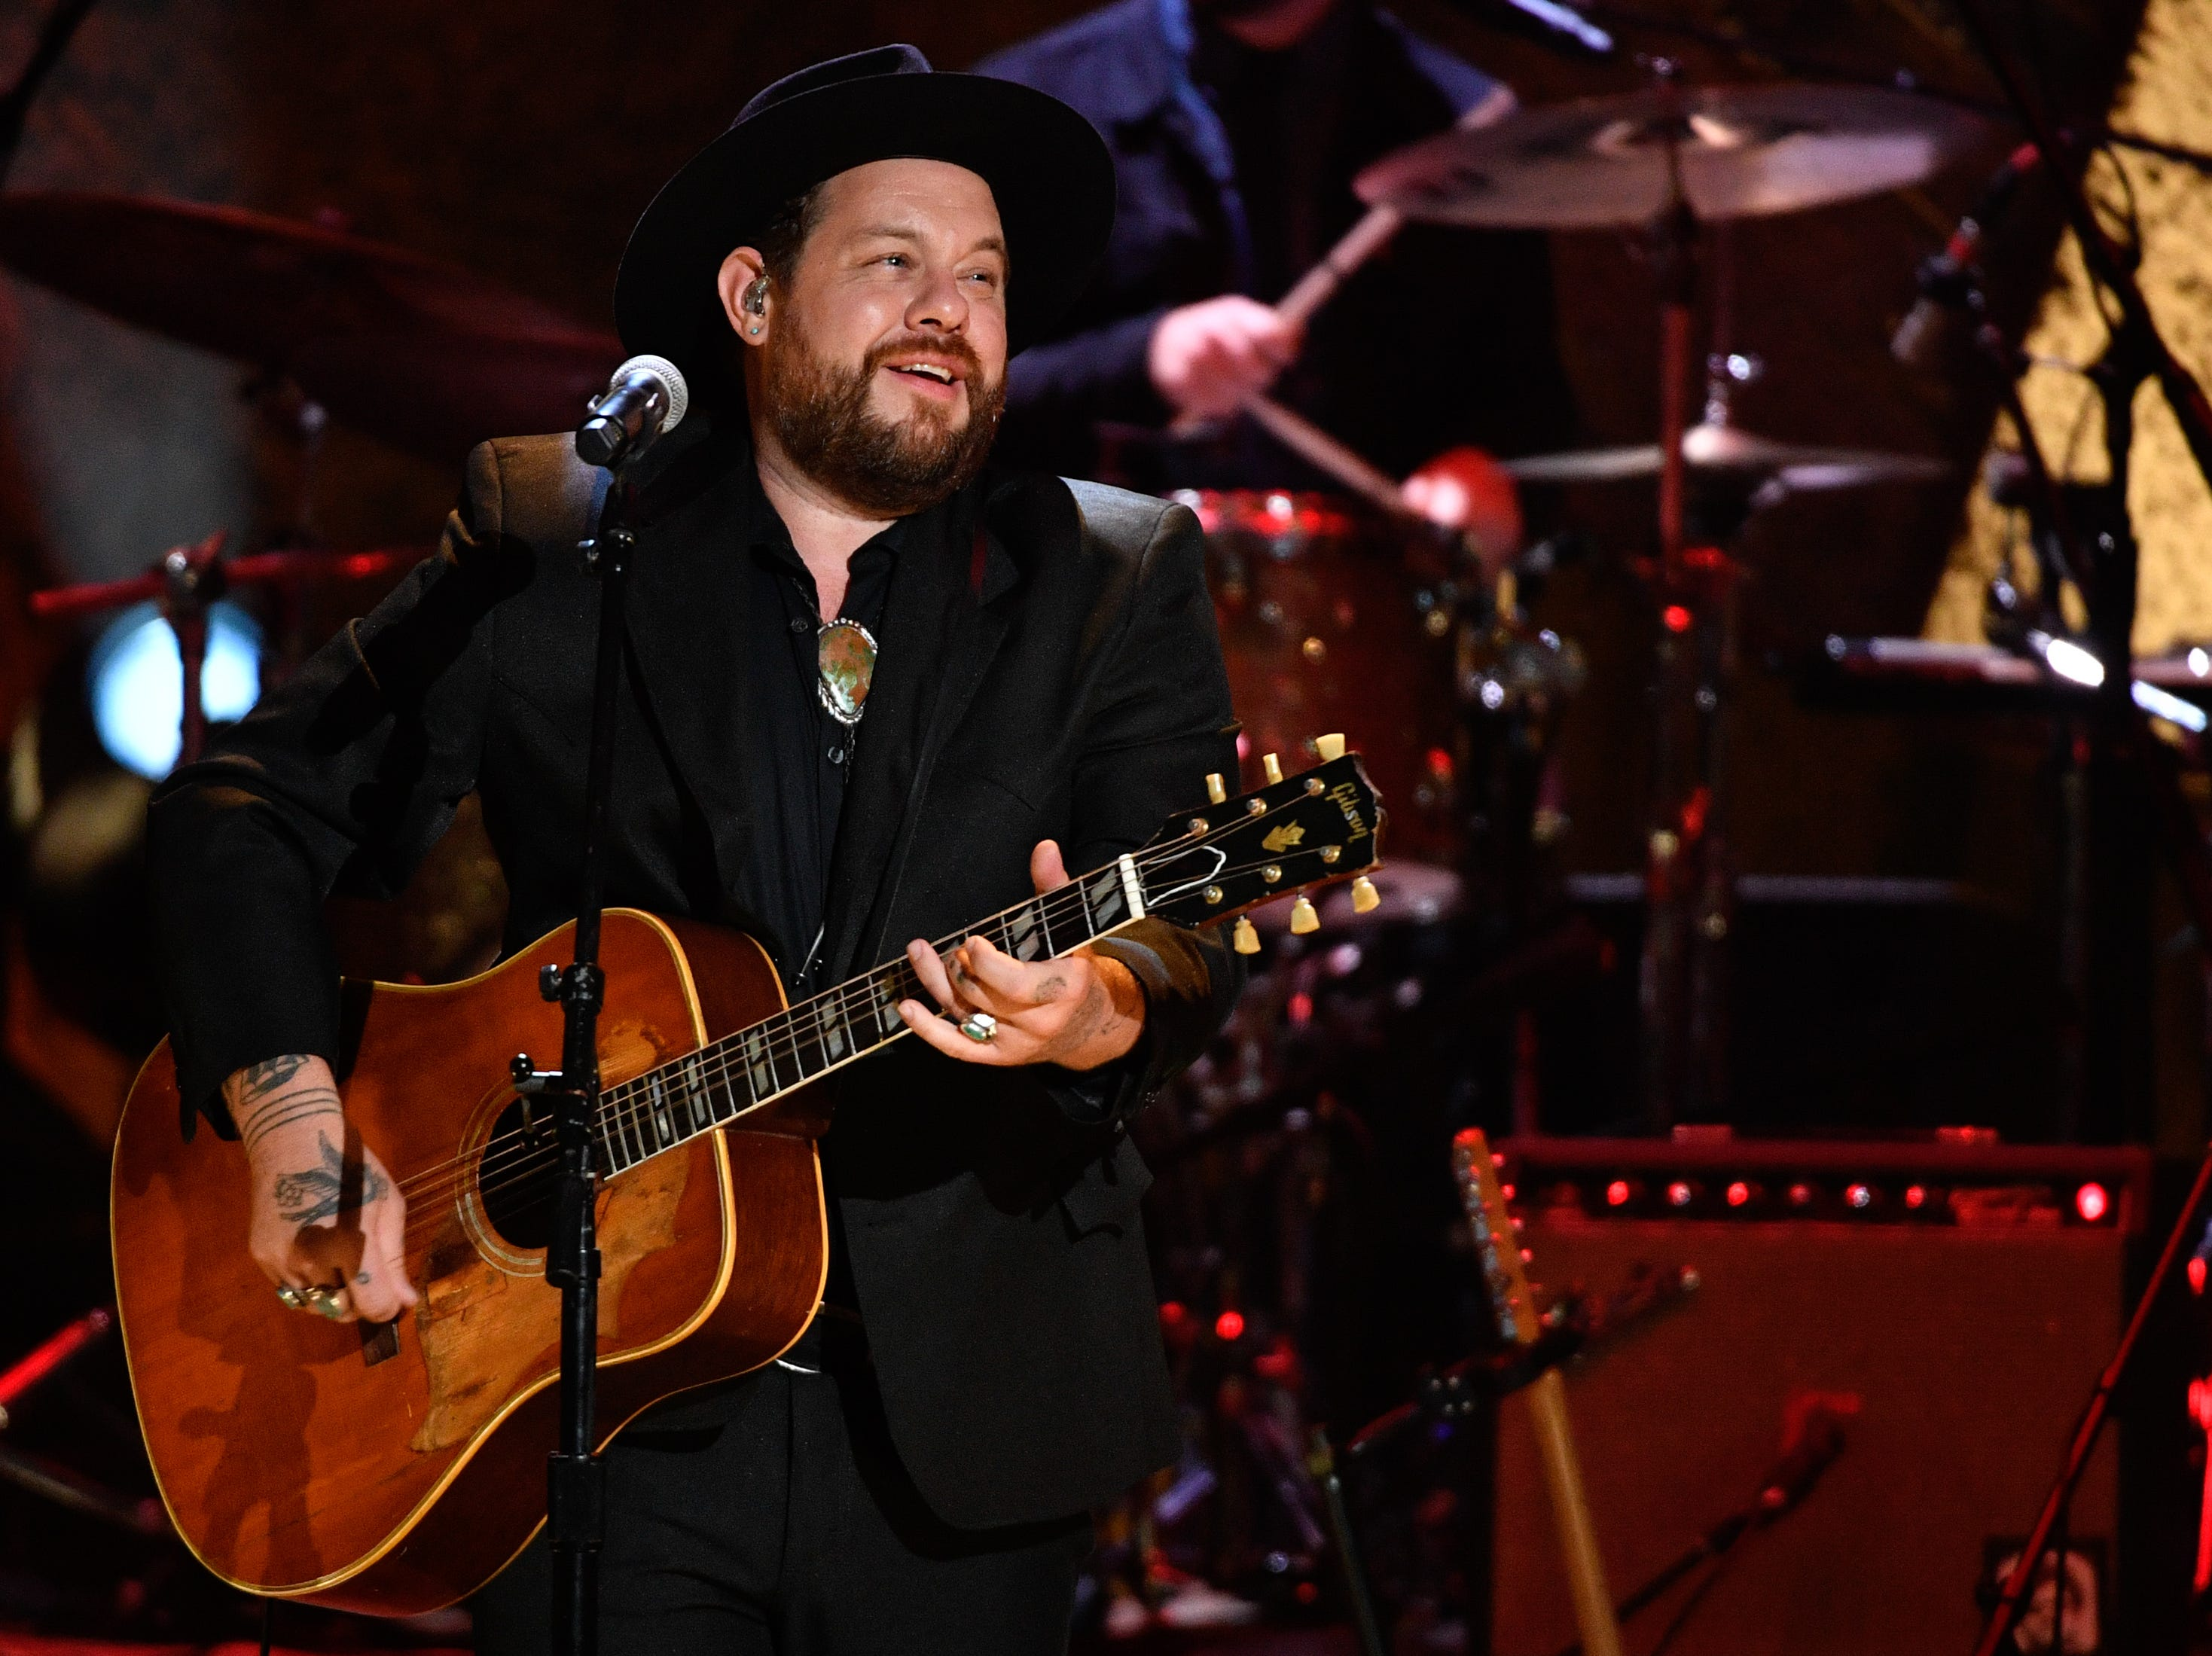 Nathaniel Rateliff and The Night Sweats perform during the 2018 Americana Honors and Awards show at the Ryman Auditorium in Nashville, Tenn., Wednesday, Sept. 12, 2018.